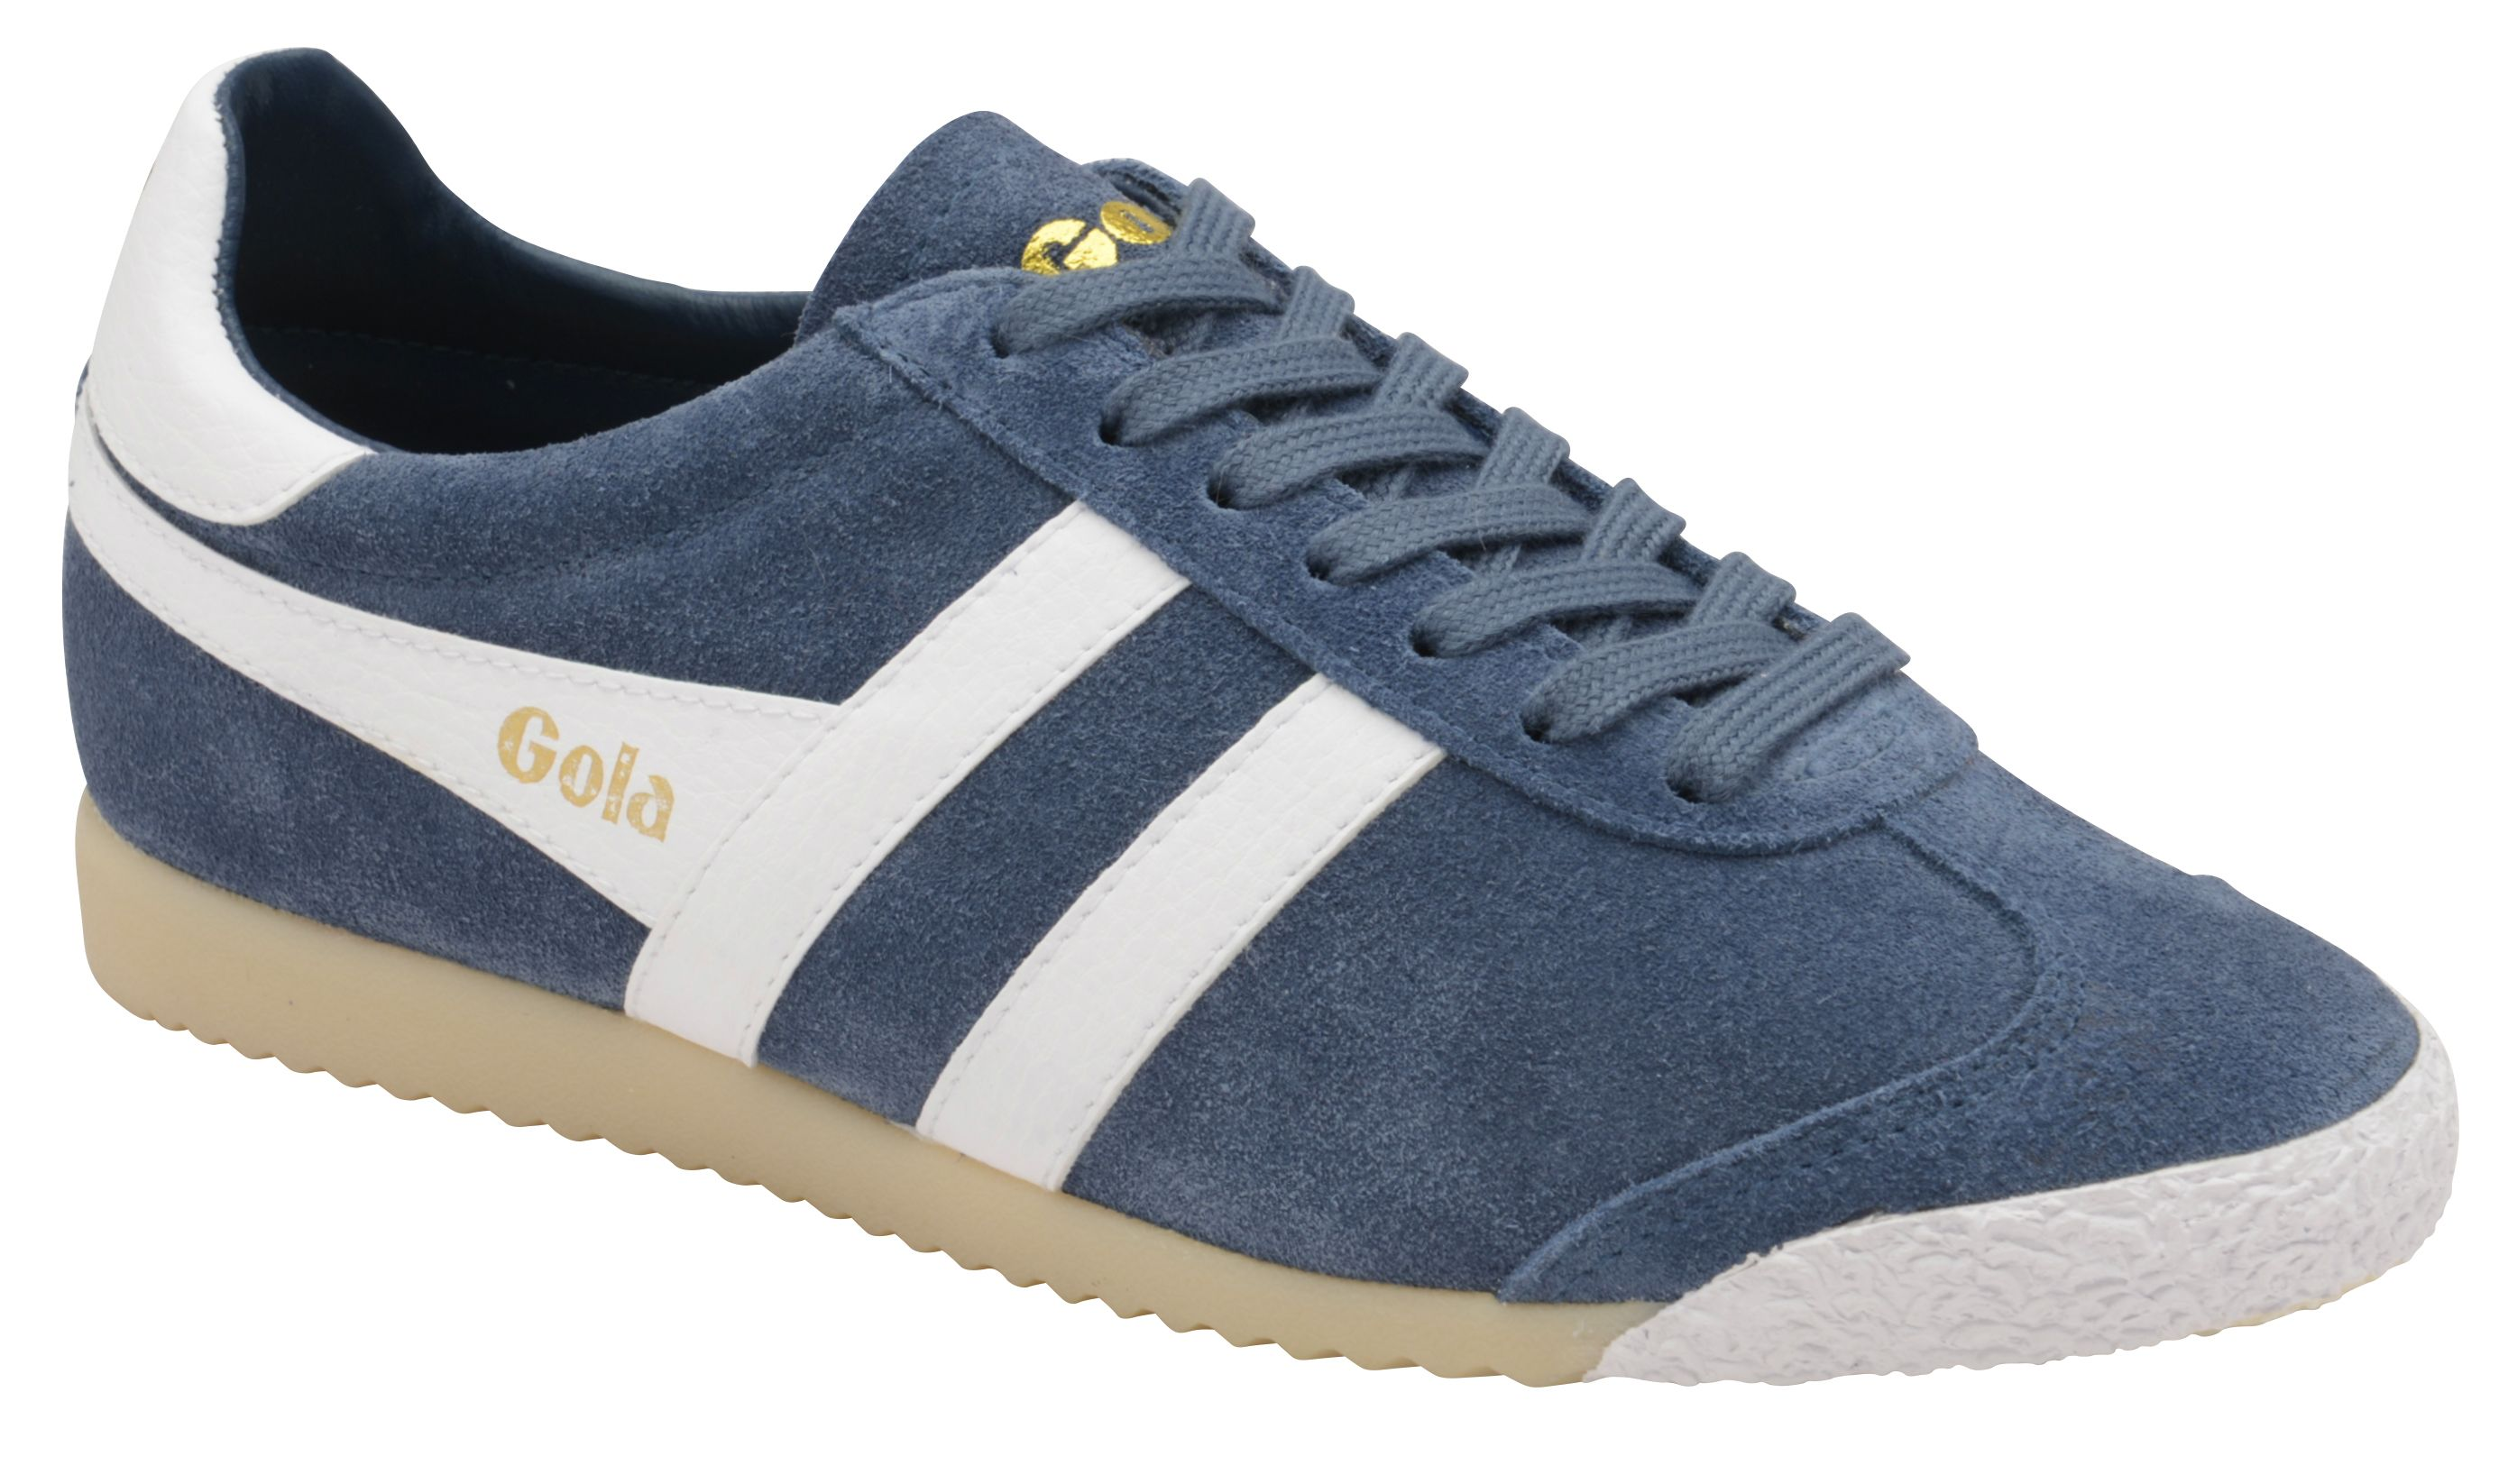 Gola Harrier 50 Suede Lace Up Trainers, Baltic Blue